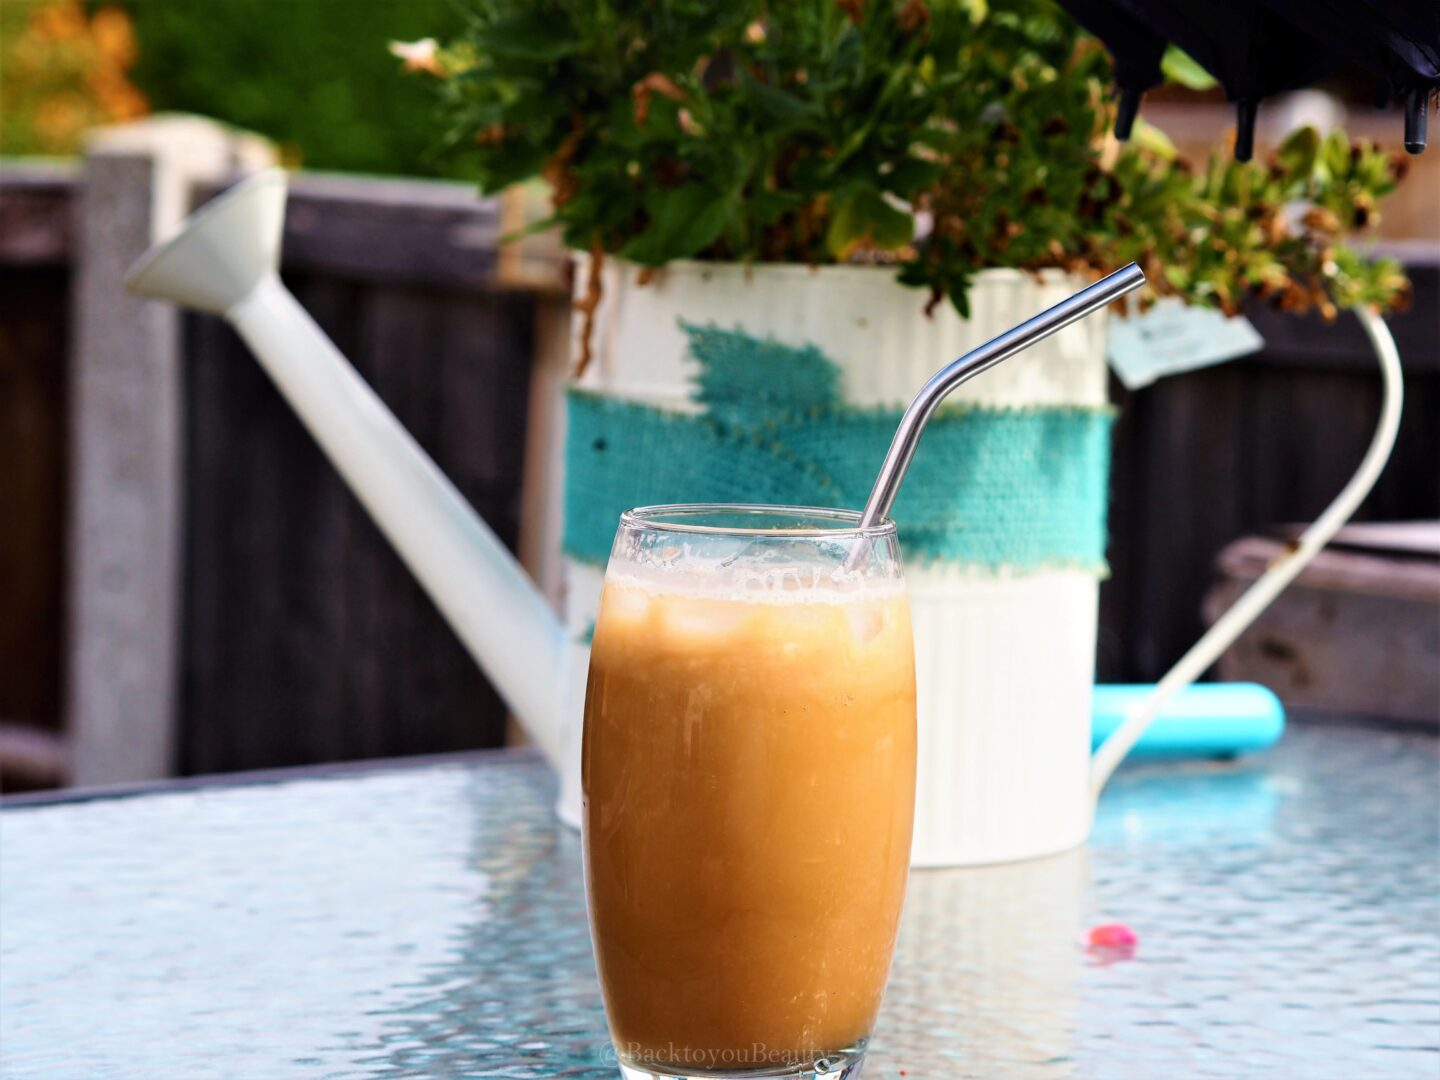 Eden Project Iced Latte